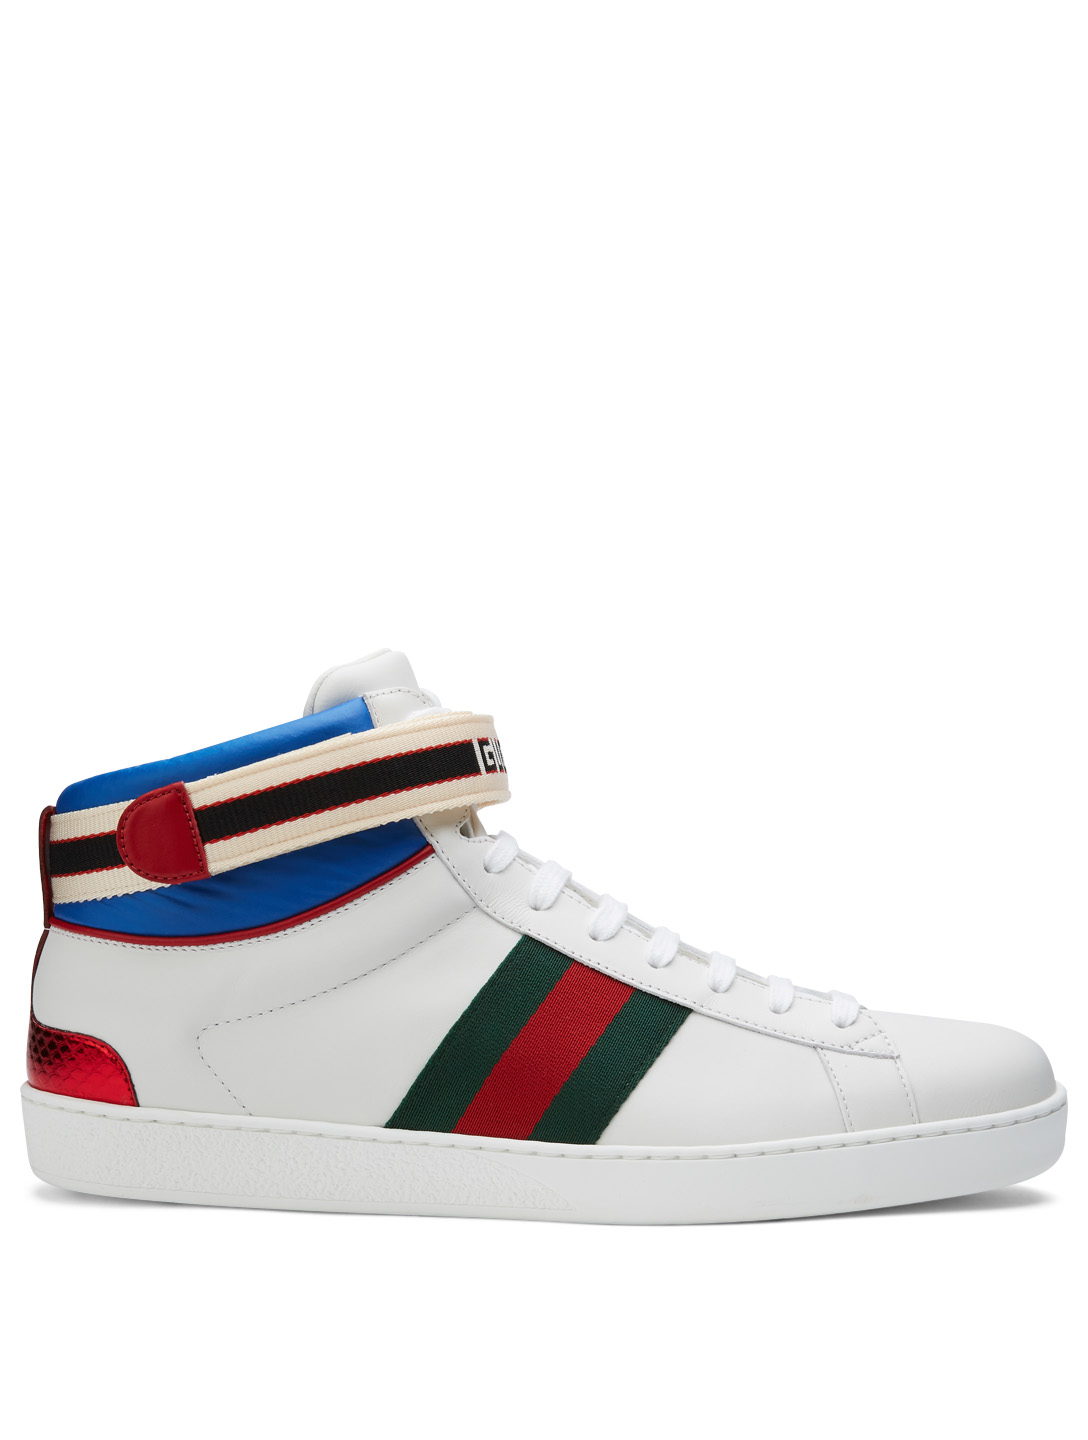 5d3e570d8e3 GUCCI Ace Leather High-Top Sneakers With Logo Stripe Men s White ...